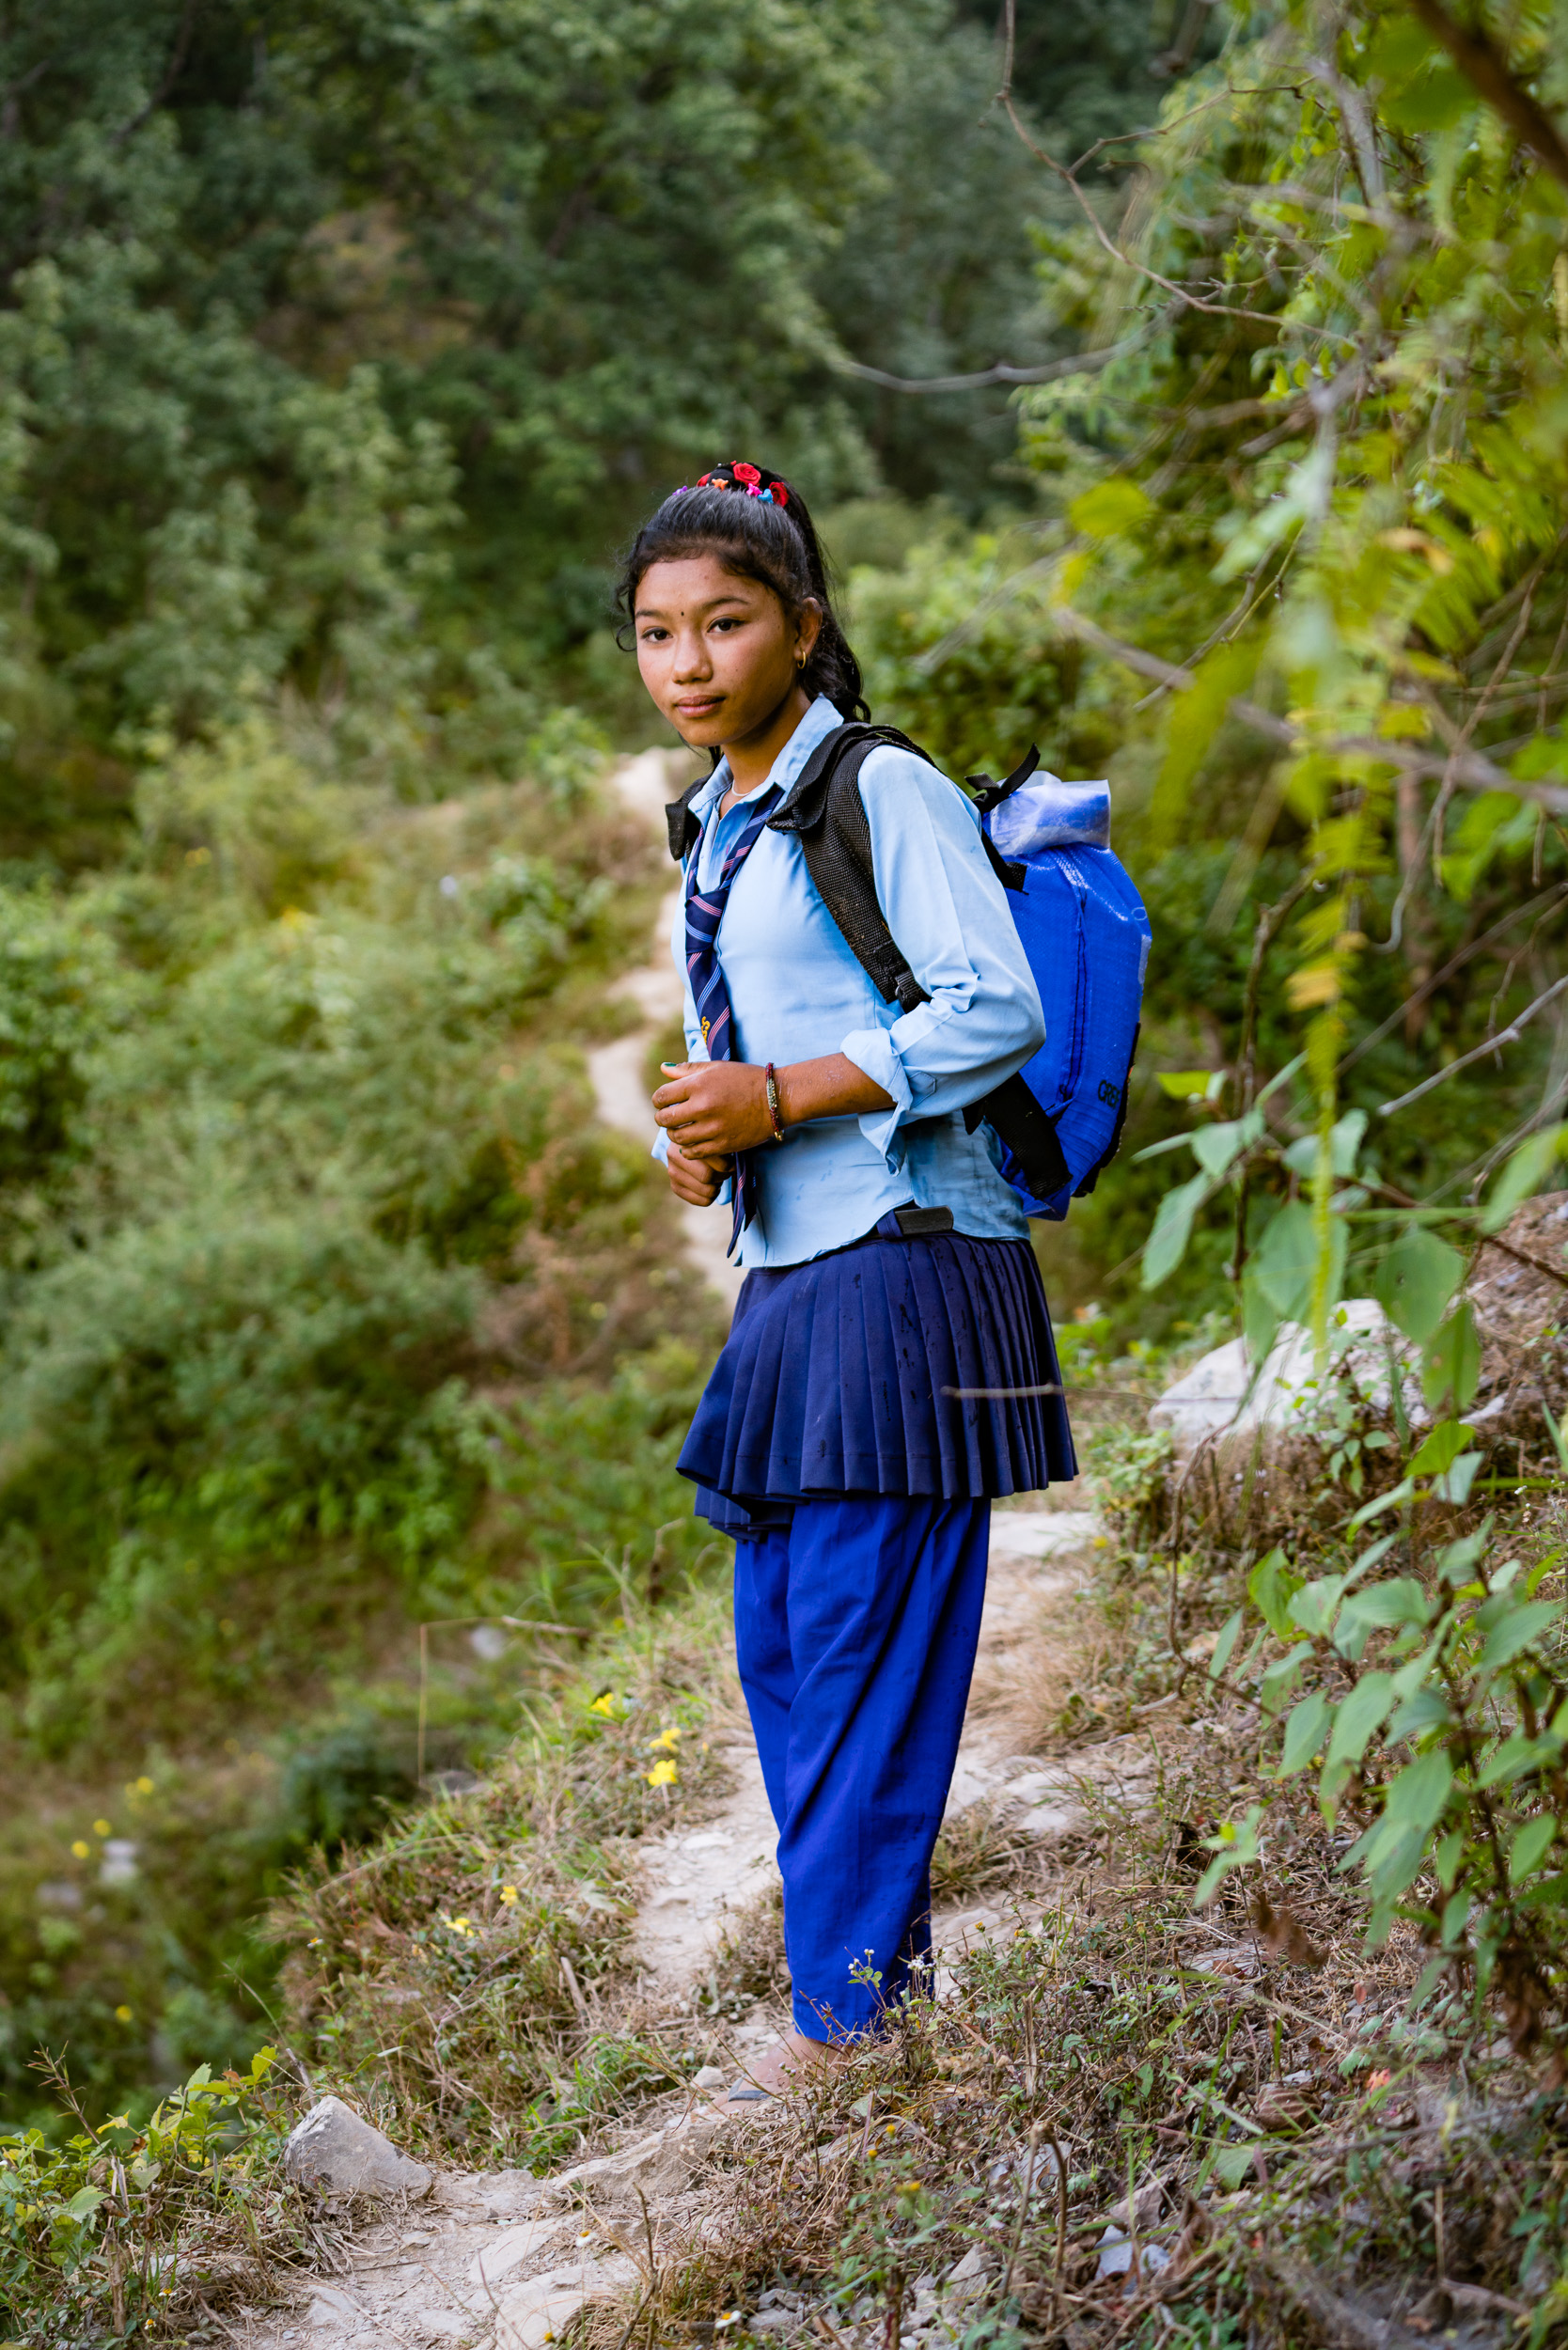 In small villages up in the mountains, one of the chores girls do is fetch water from a mountain spring. It is along a small, steep path cut into the mountainside. Literally hundreds of feet up. These backpacks designed to carry water provided by Kids of Kathmandu make the chore easier and safer.